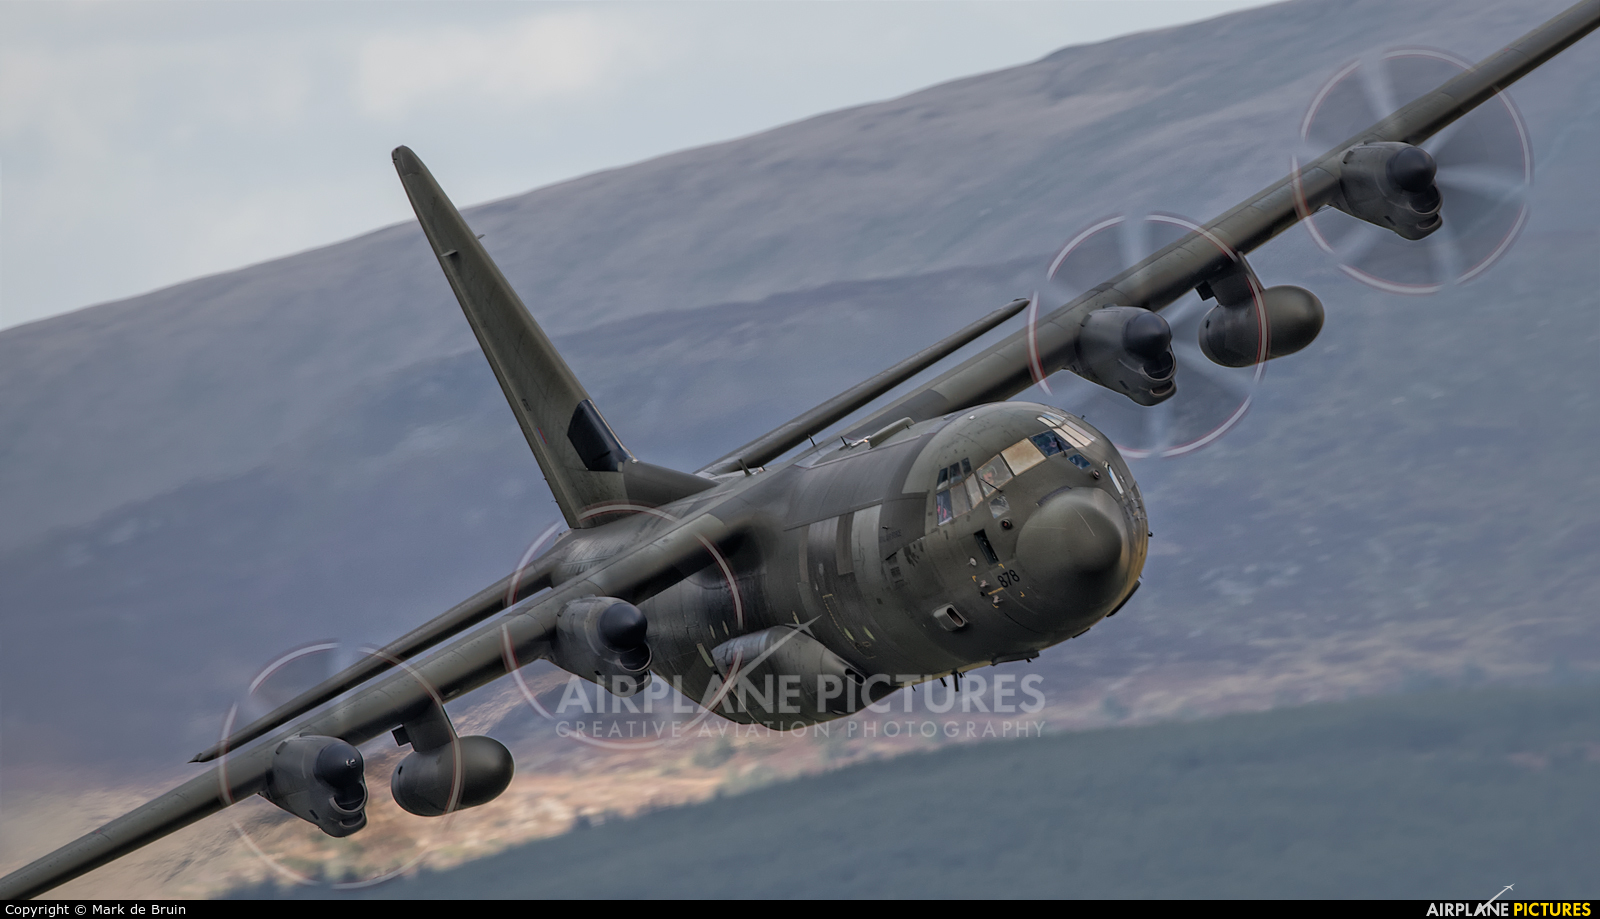 ZH878 - Royal Air Force Lockheed Hercules C 4 at Cad West